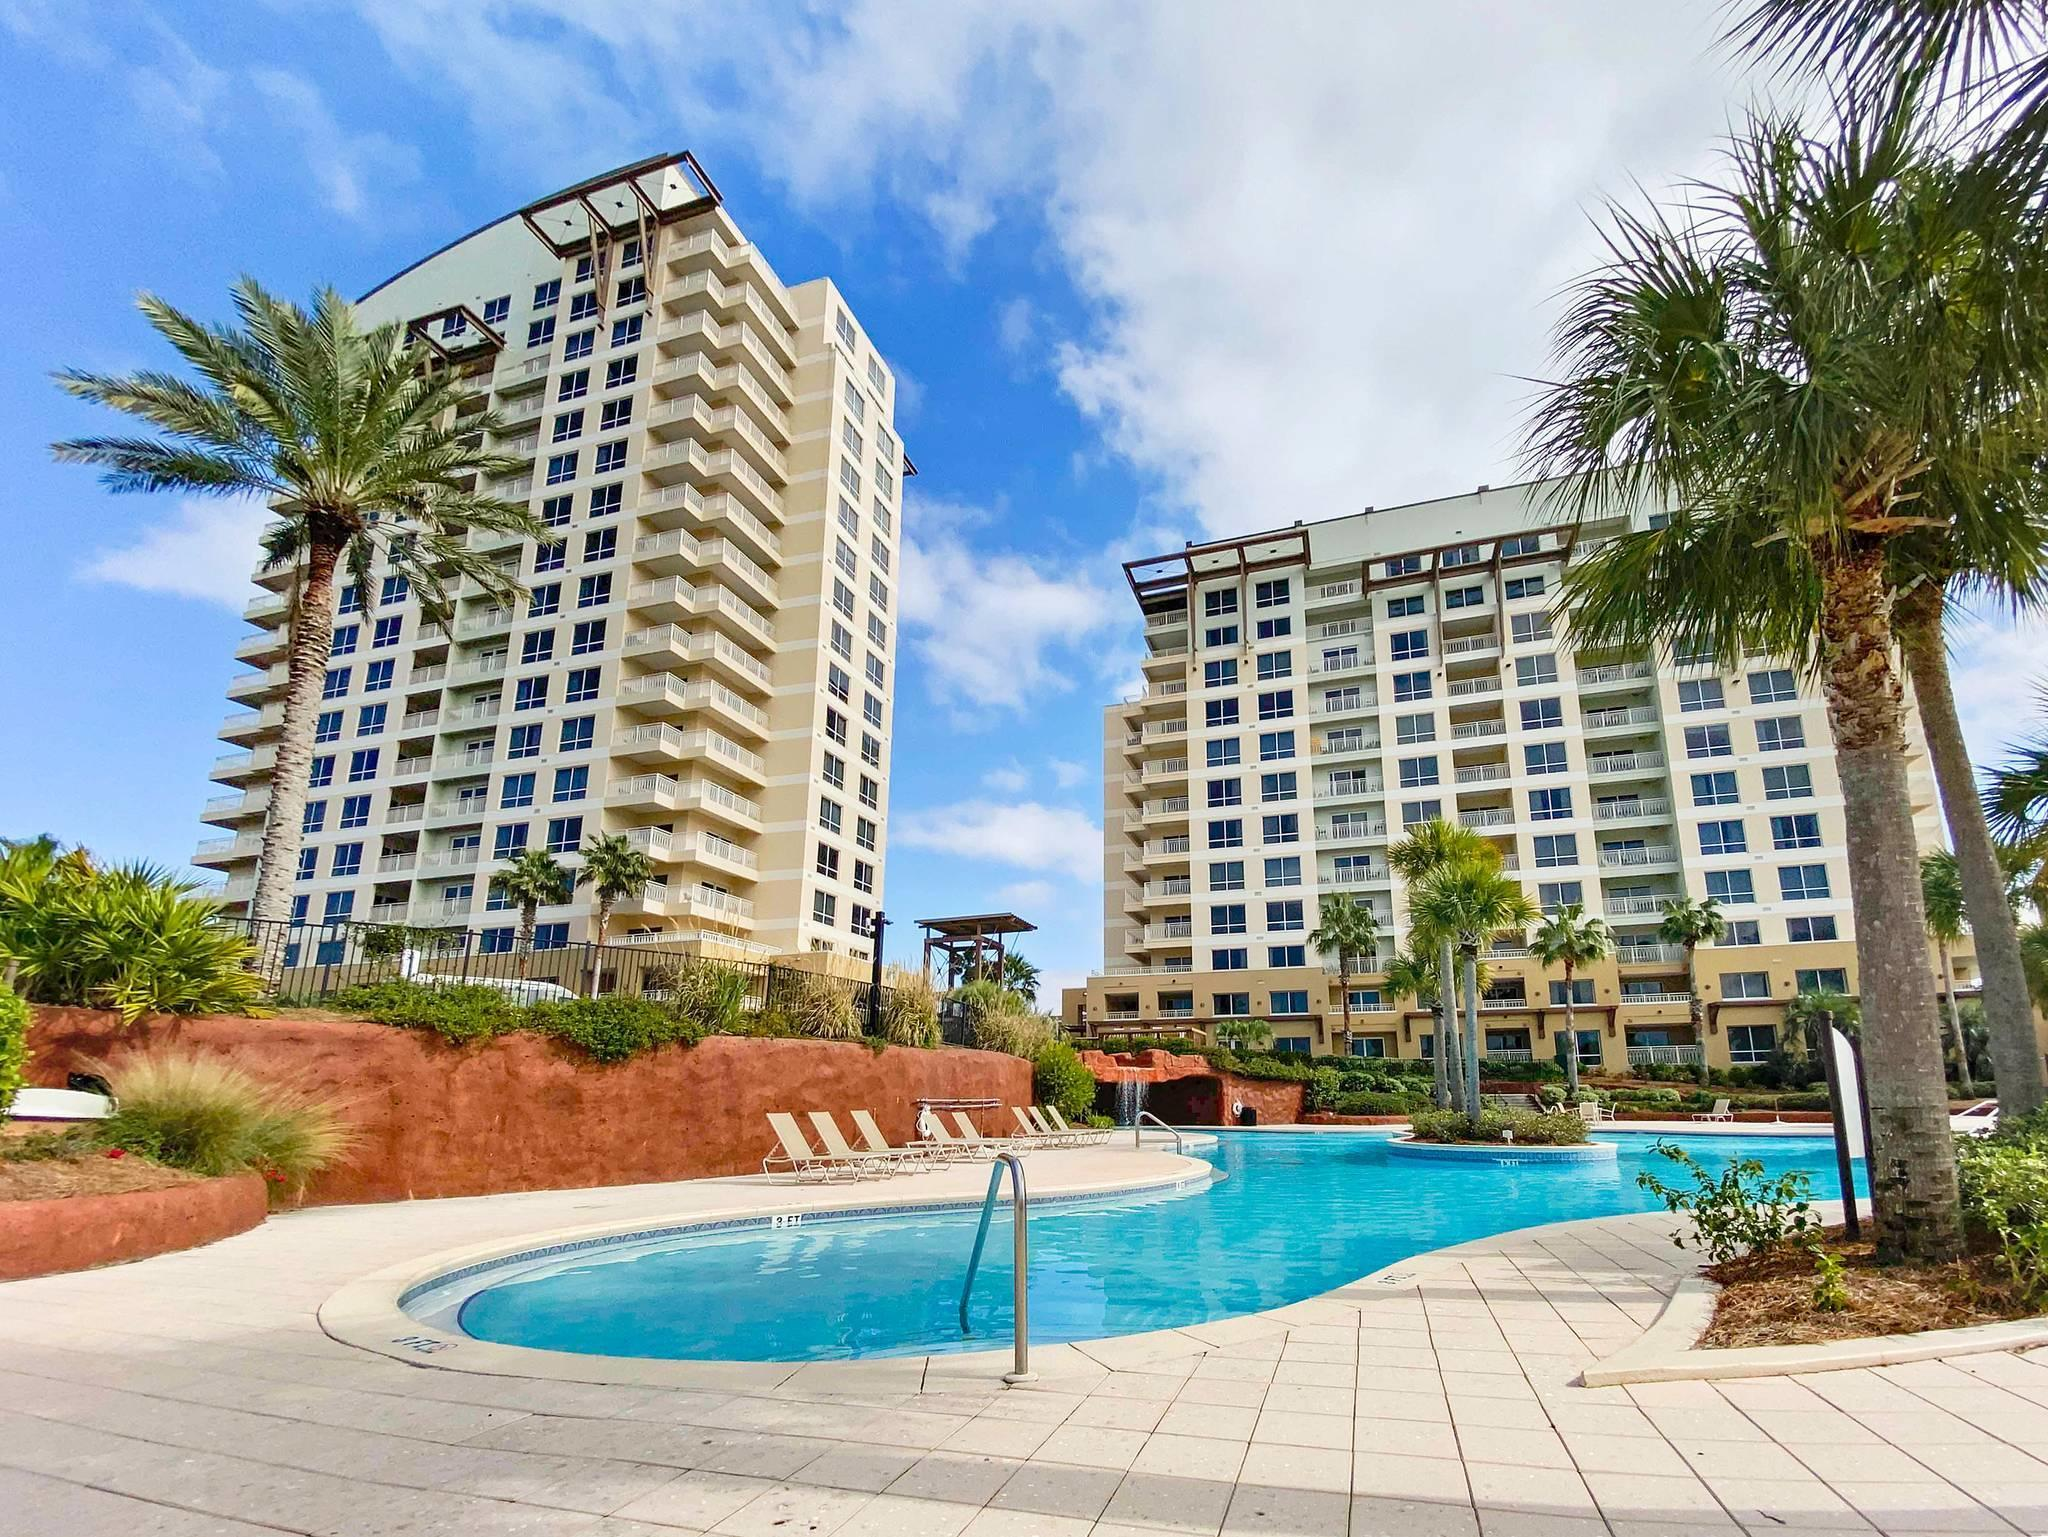 All about the views from this unit. It is located in the Phase II building closest to the beach and